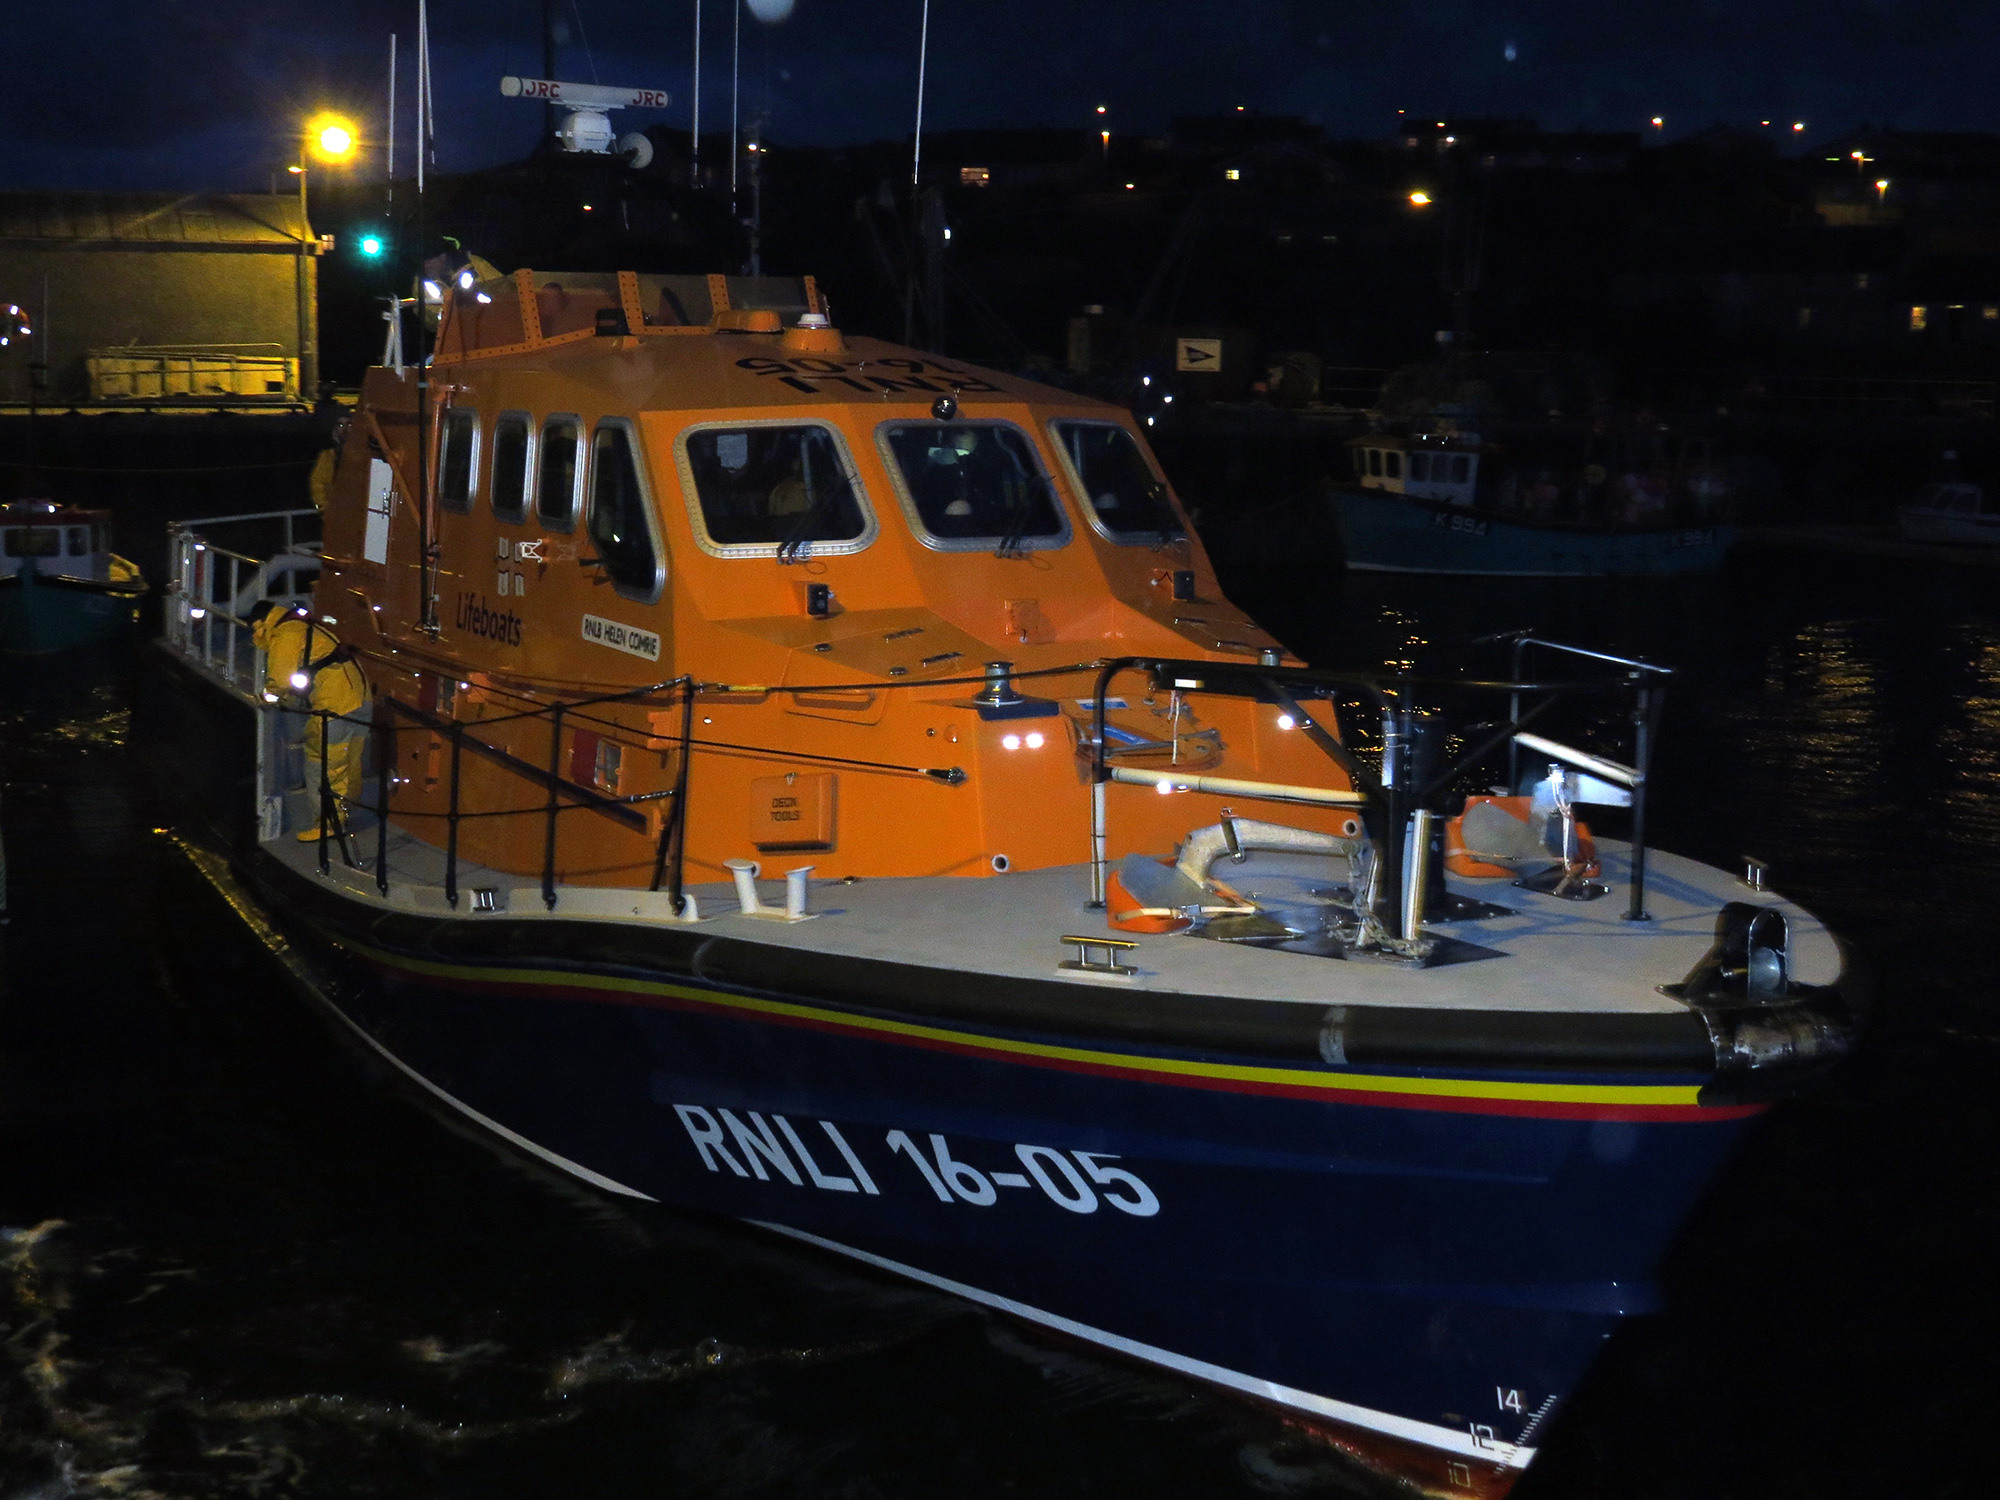 RNLI Longhope Lifeboat leaving station tonight on service